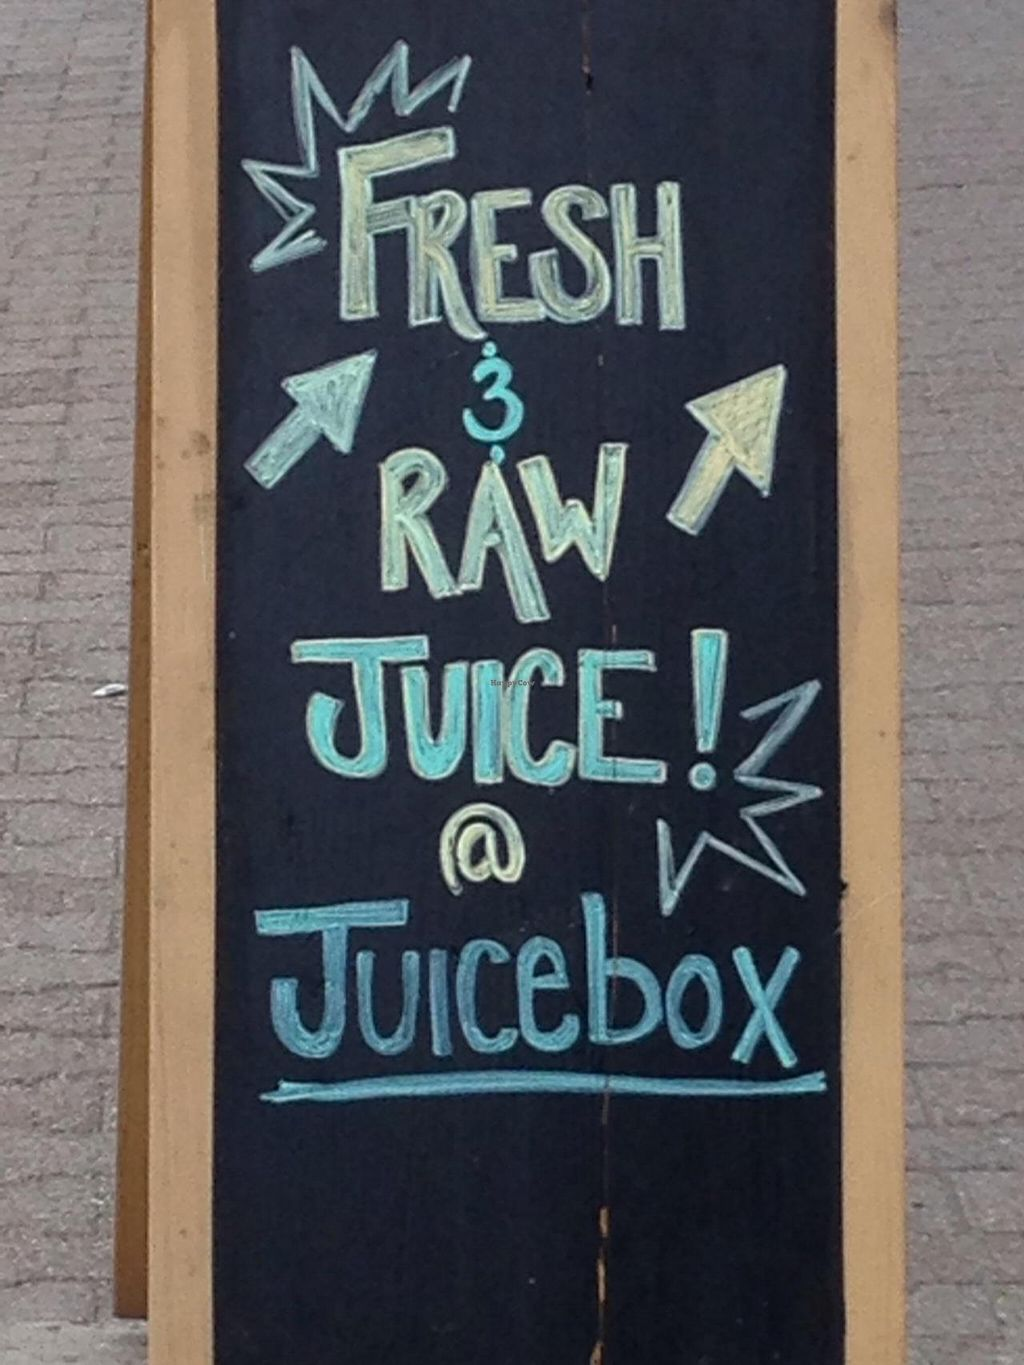 """Photo of Juicebox  by <a href=""""/members/profile/cookiem"""">cookiem</a> <br/>Outside sign <br/> May 30, 2015  - <a href='/contact/abuse/image/58829/104200'>Report</a>"""